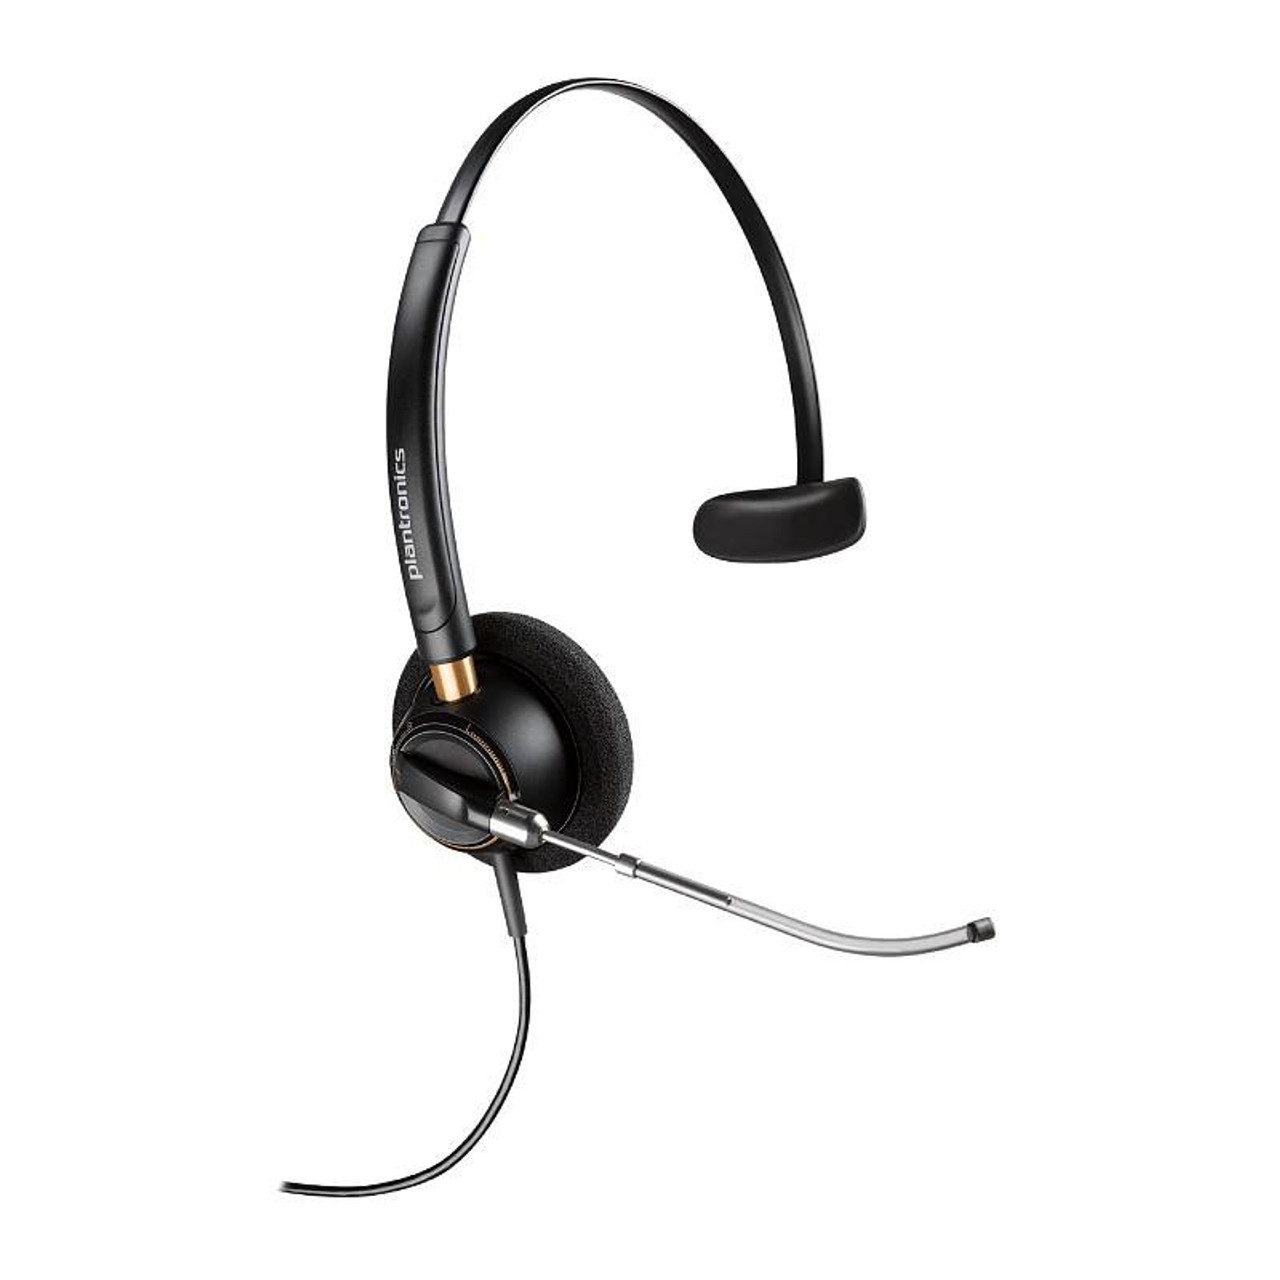 Image for Plantronics EncorePro HW510V Over-the-Head Monaural Voice Tube Corded Headset CX Computer Superstore